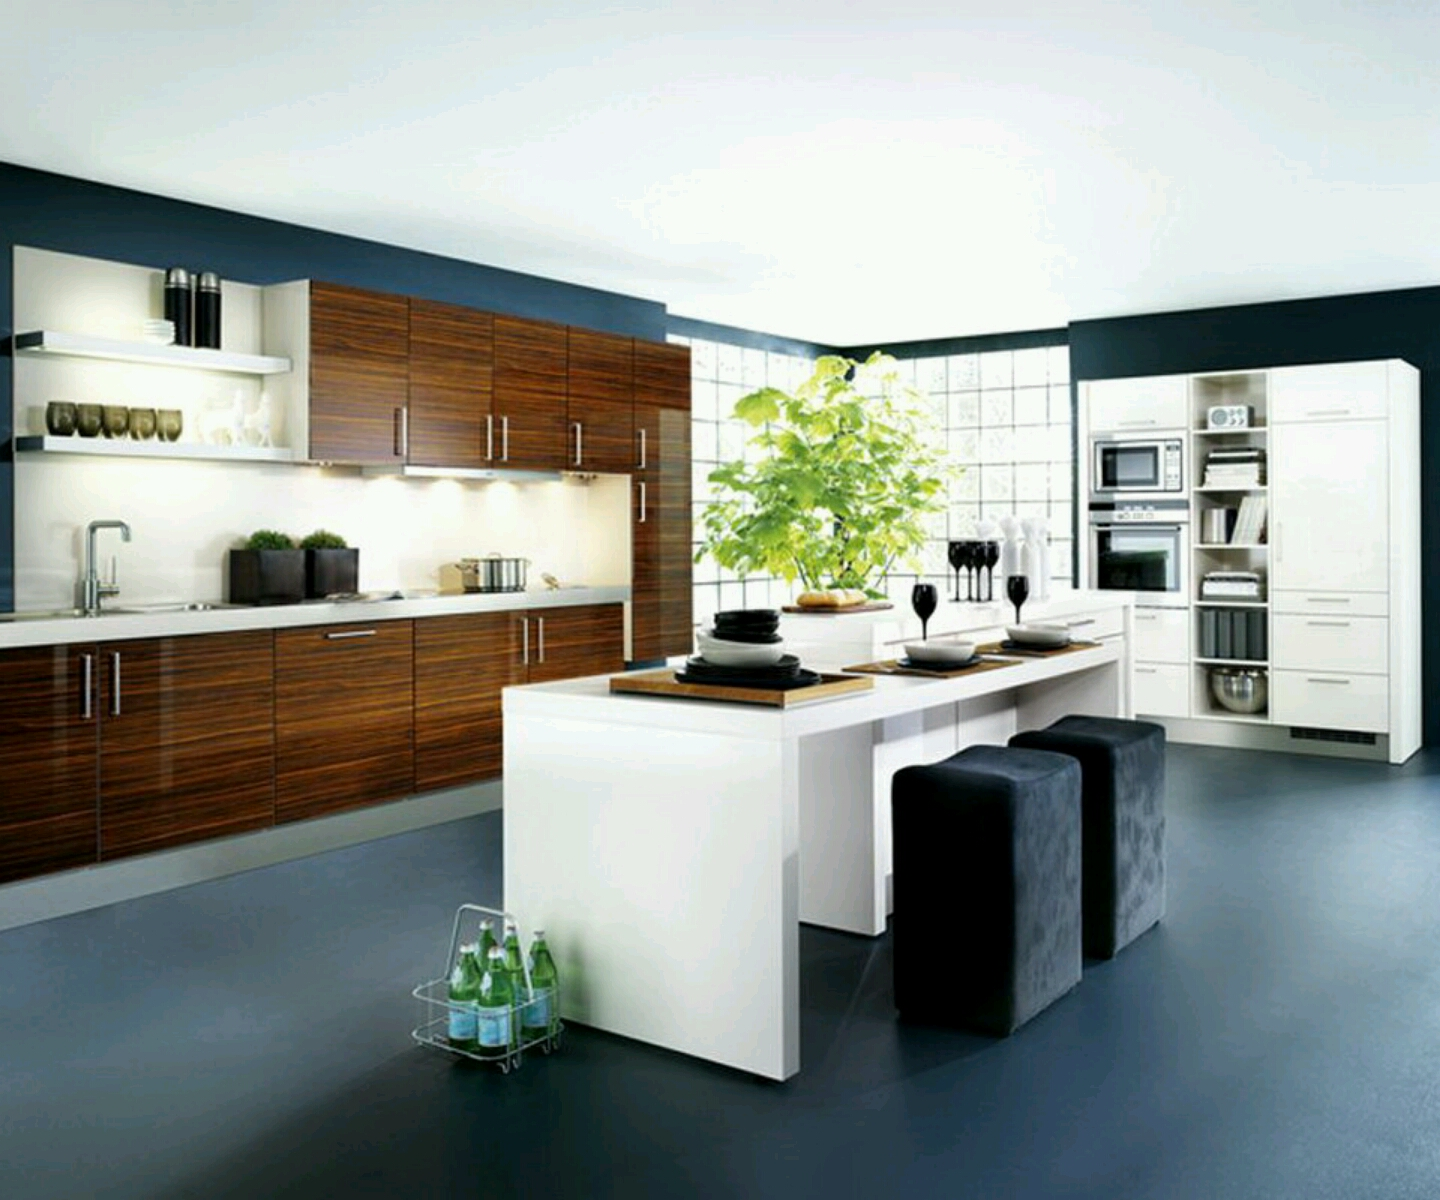 New home designs latest kitchen cabinets designs modern homes - Home kitchen design ideas ...